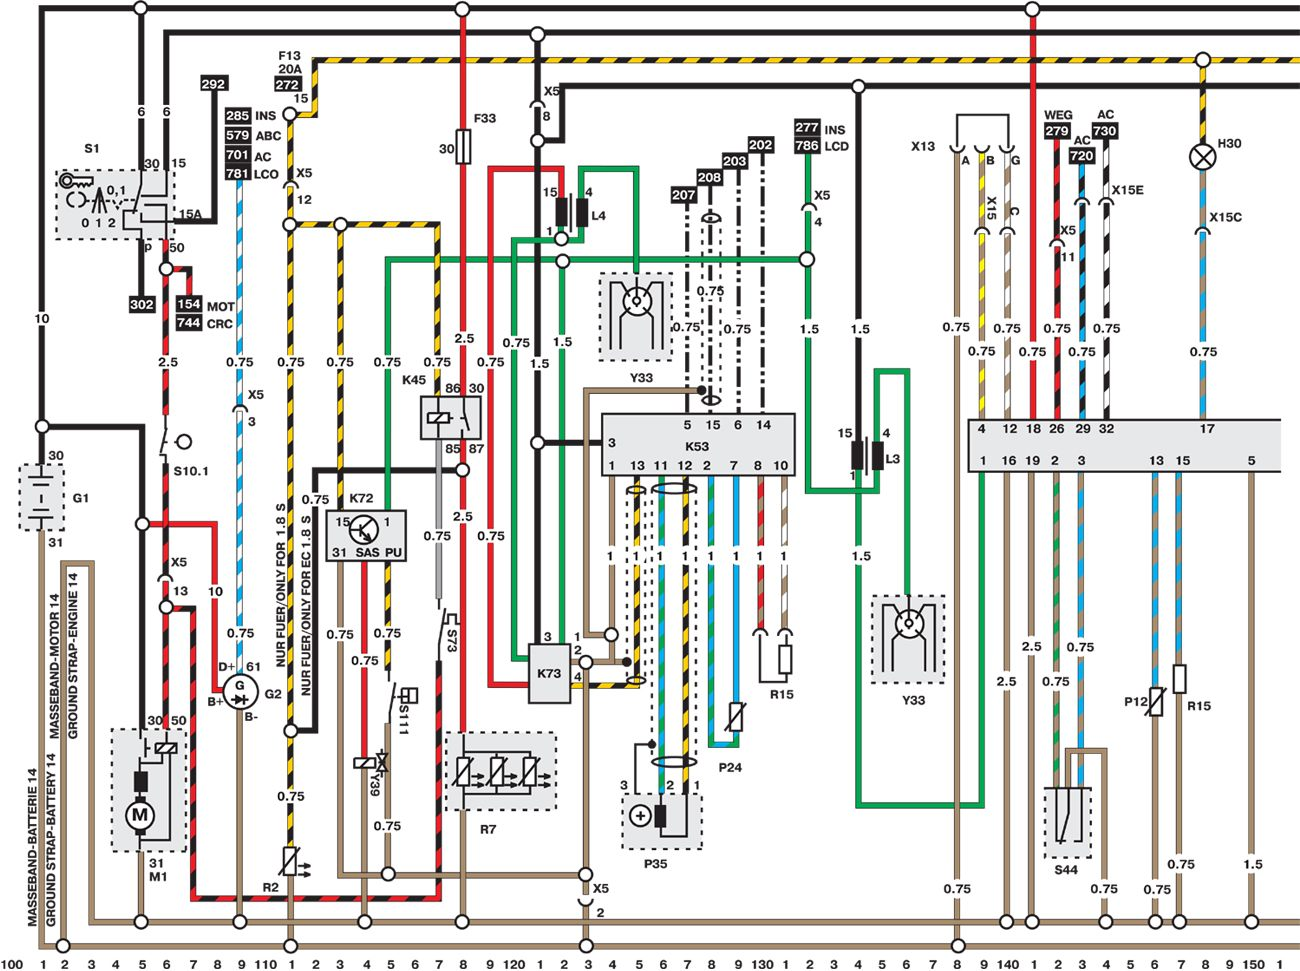 19462094 Vauxhall Ac Wiring Diagram on ac receptacles diagram, ac regulator diagram, ac solenoid diagram, ac heater diagram, ac heating element diagram, ac wiring circuit, ac air conditioning diagram, ac wiring color, ac ductwork diagram, ac wiring code, ac refrigerant cycle diagram, ac assembly diagram, ac manifold diagram, ac installation diagram, ac schematic diagram, ac motors diagram, ac electrical circuit diagrams, circuit breaker diagram, ac system wiring, ac light wiring,